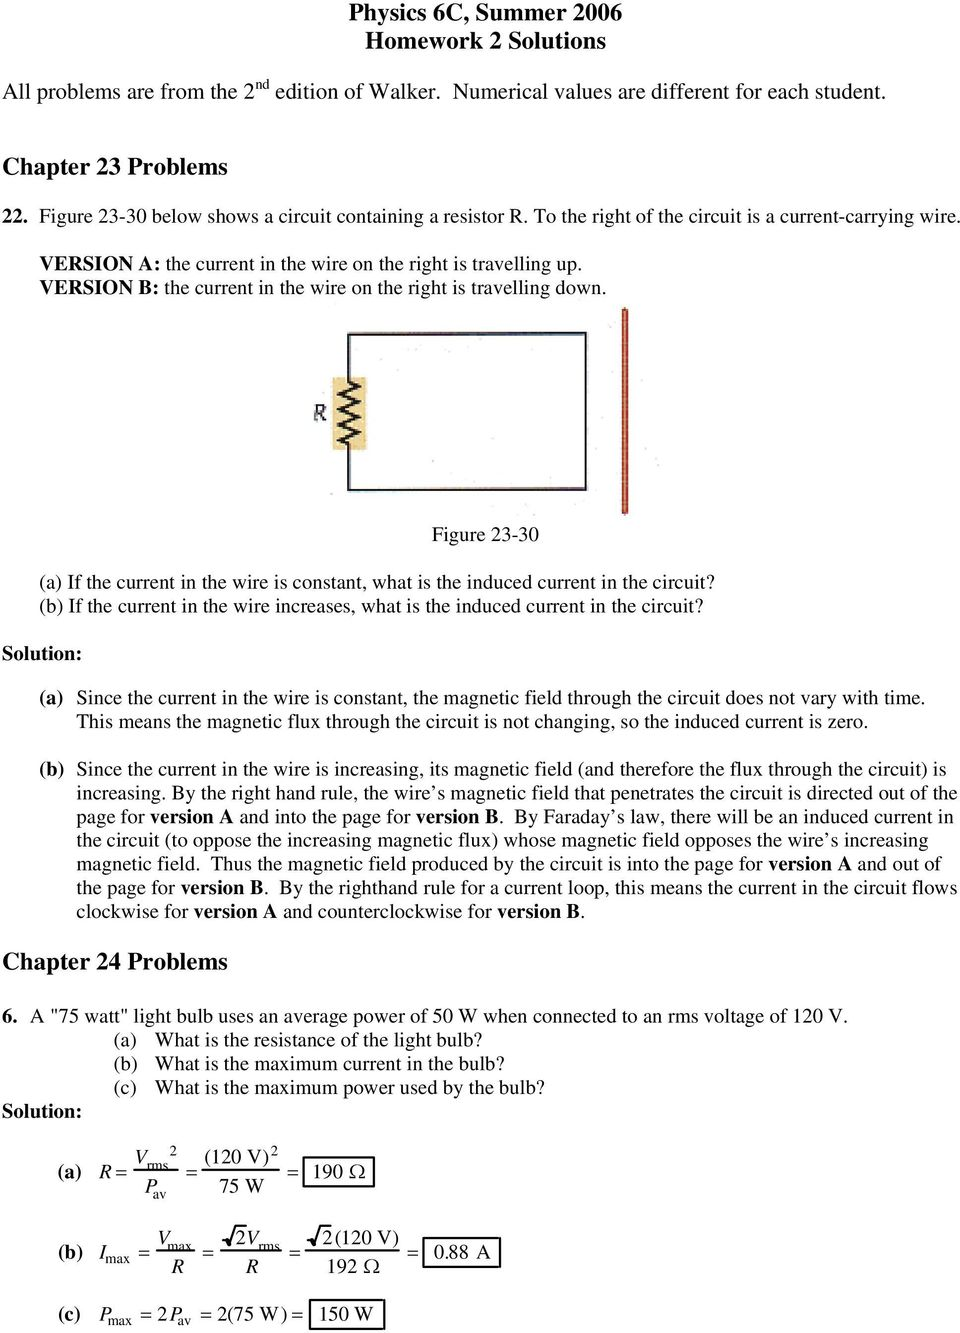 Physics 6C, Summer 2006 Homework 2 Solutions - PDF